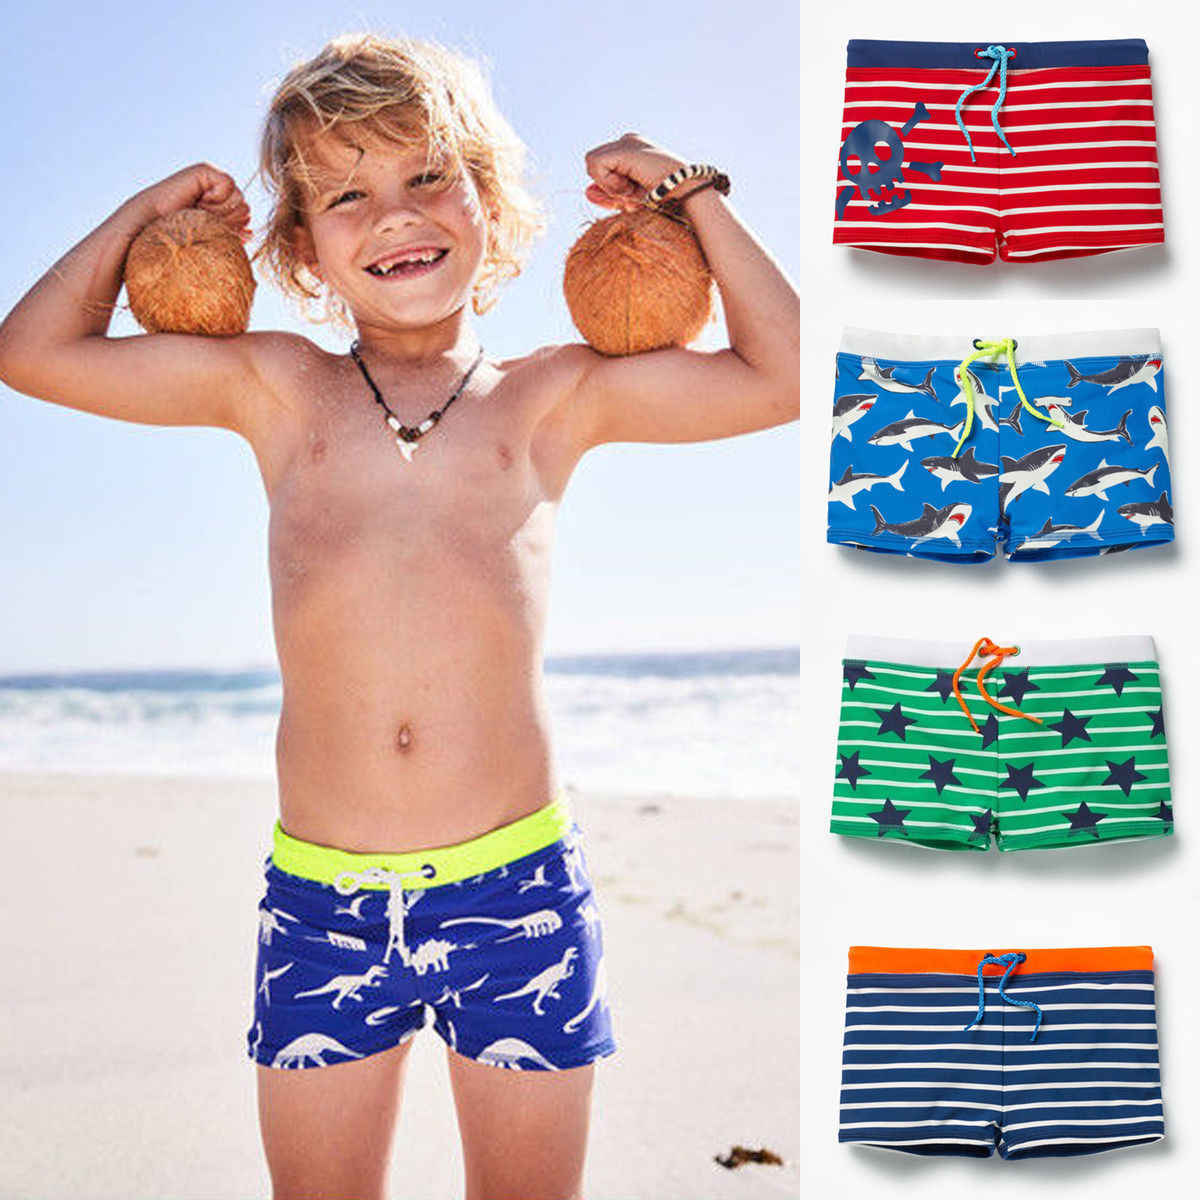 b5605e6227 Cool Handsome Toddler Boy Kid Swimming Shorts Swimwear Summer Beach Swim  Trunks Pants Clothes Striped Star